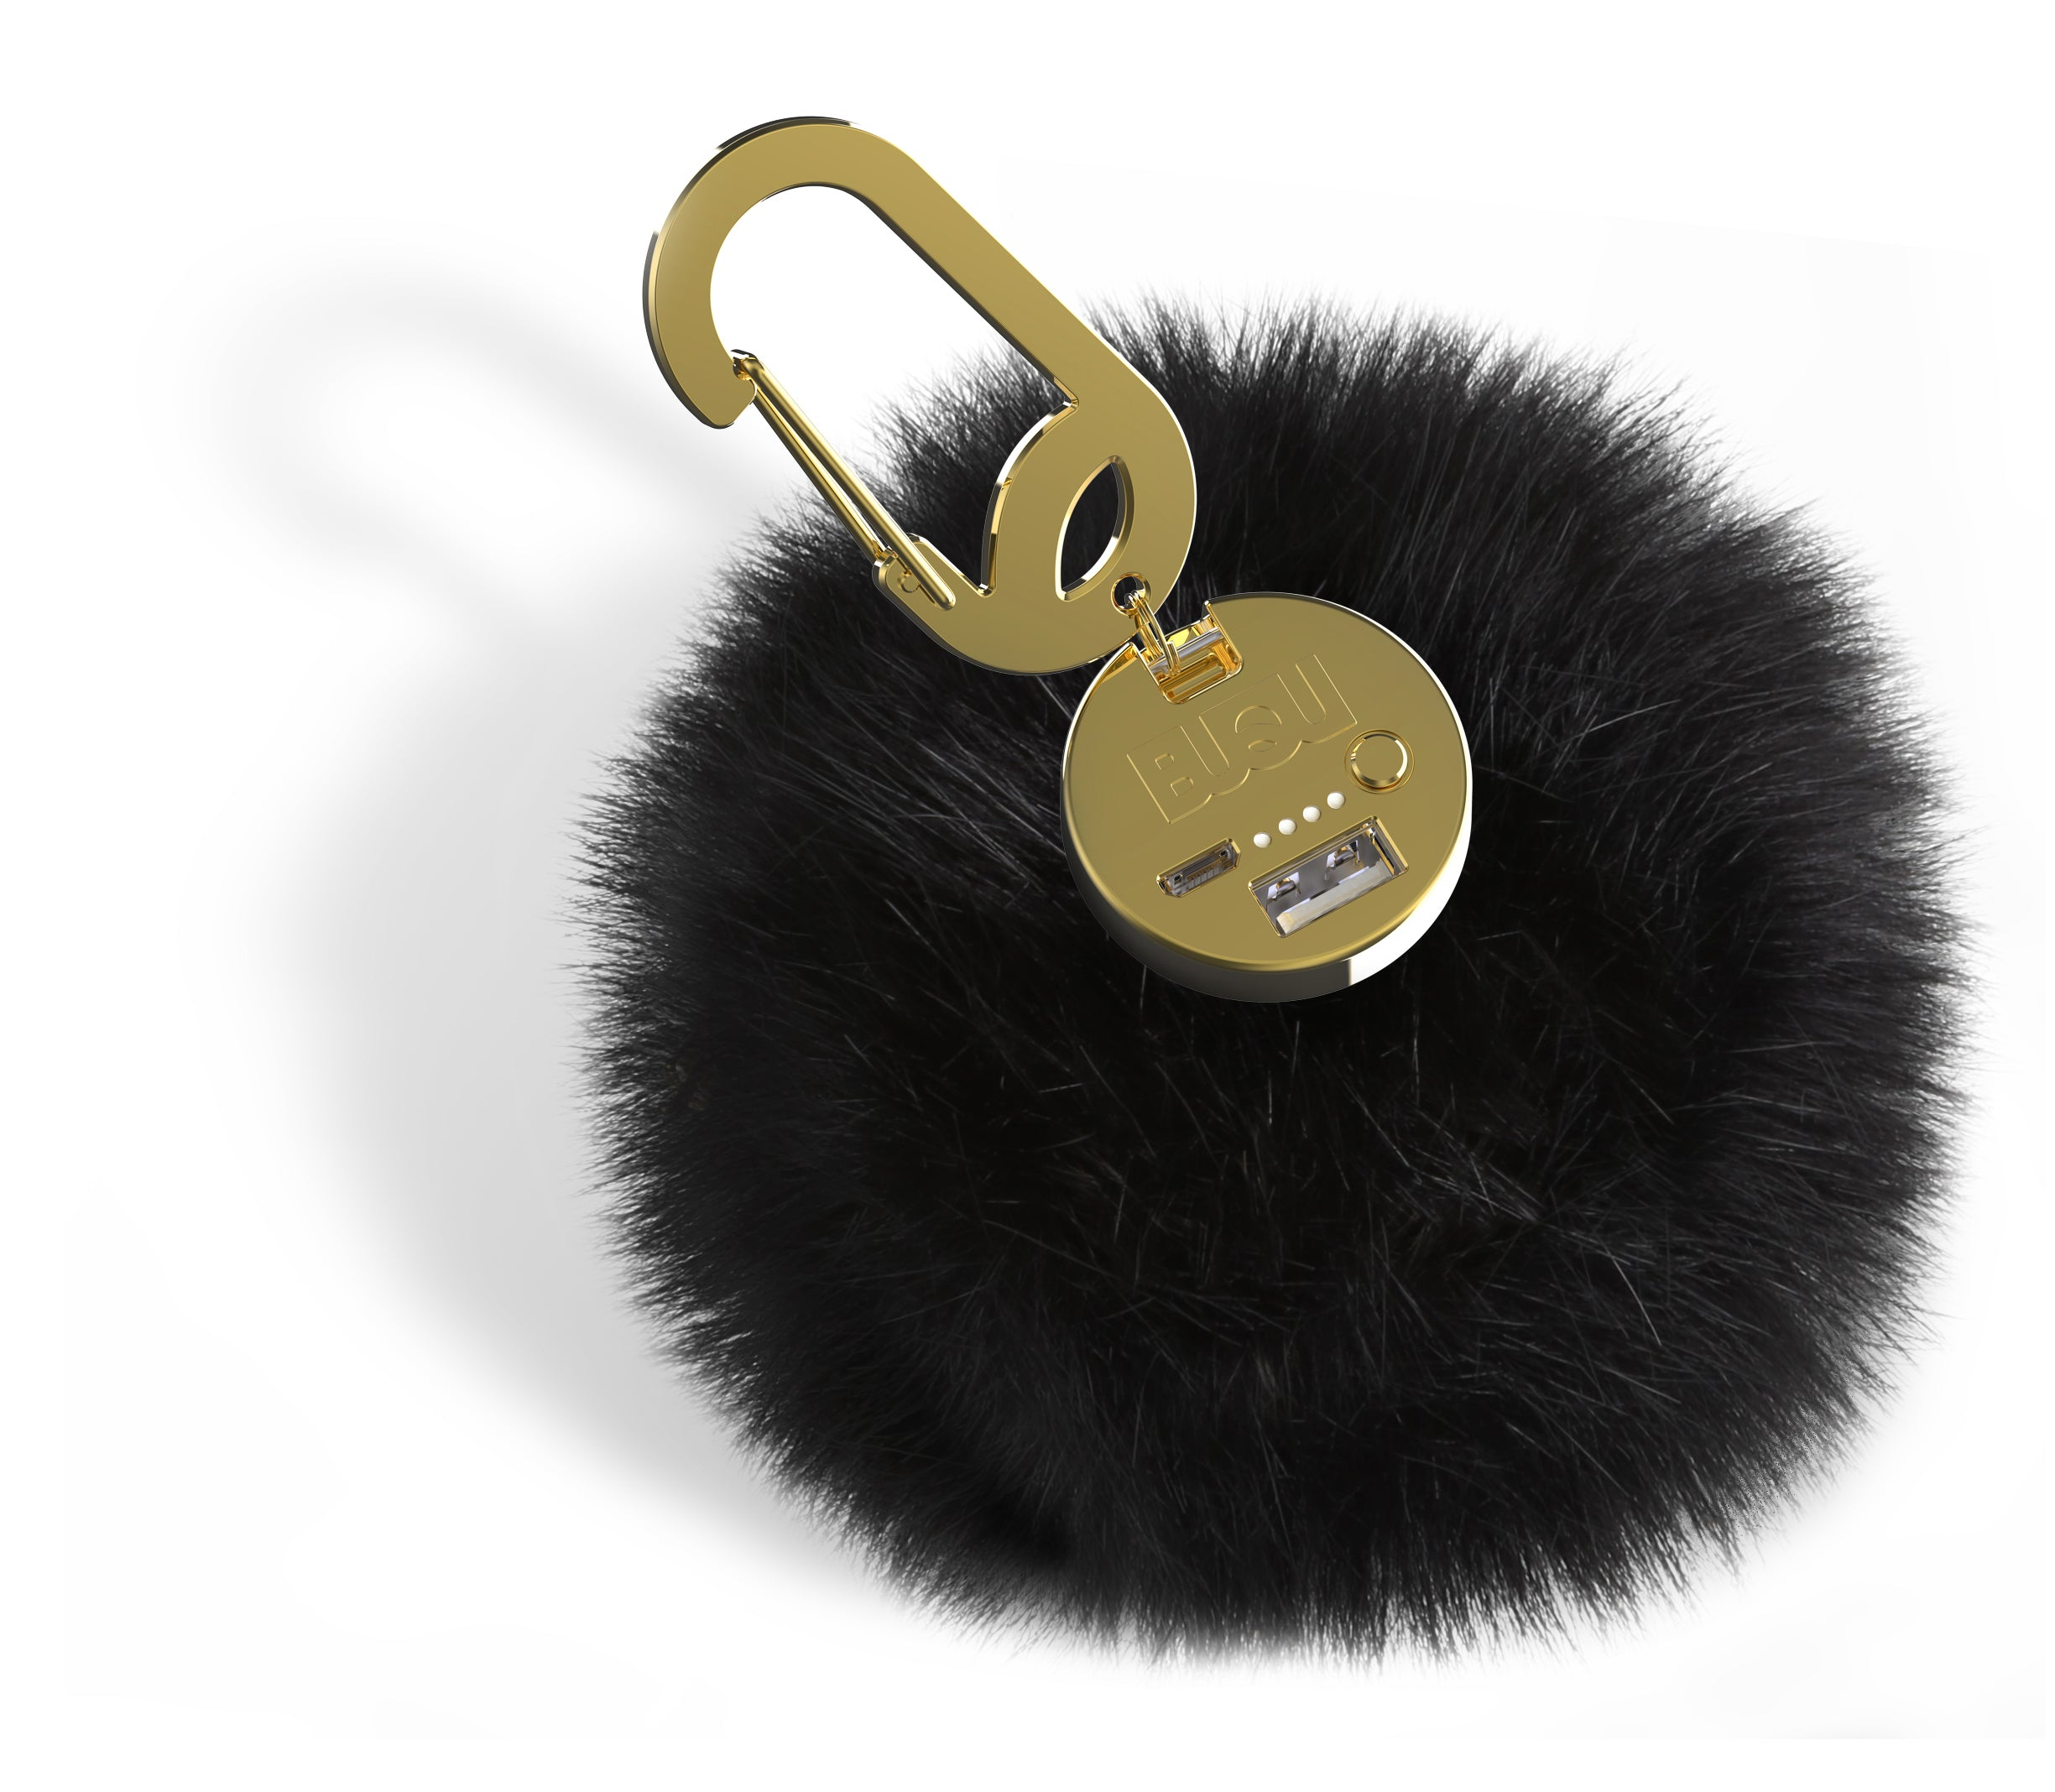 Poof Black Product Image